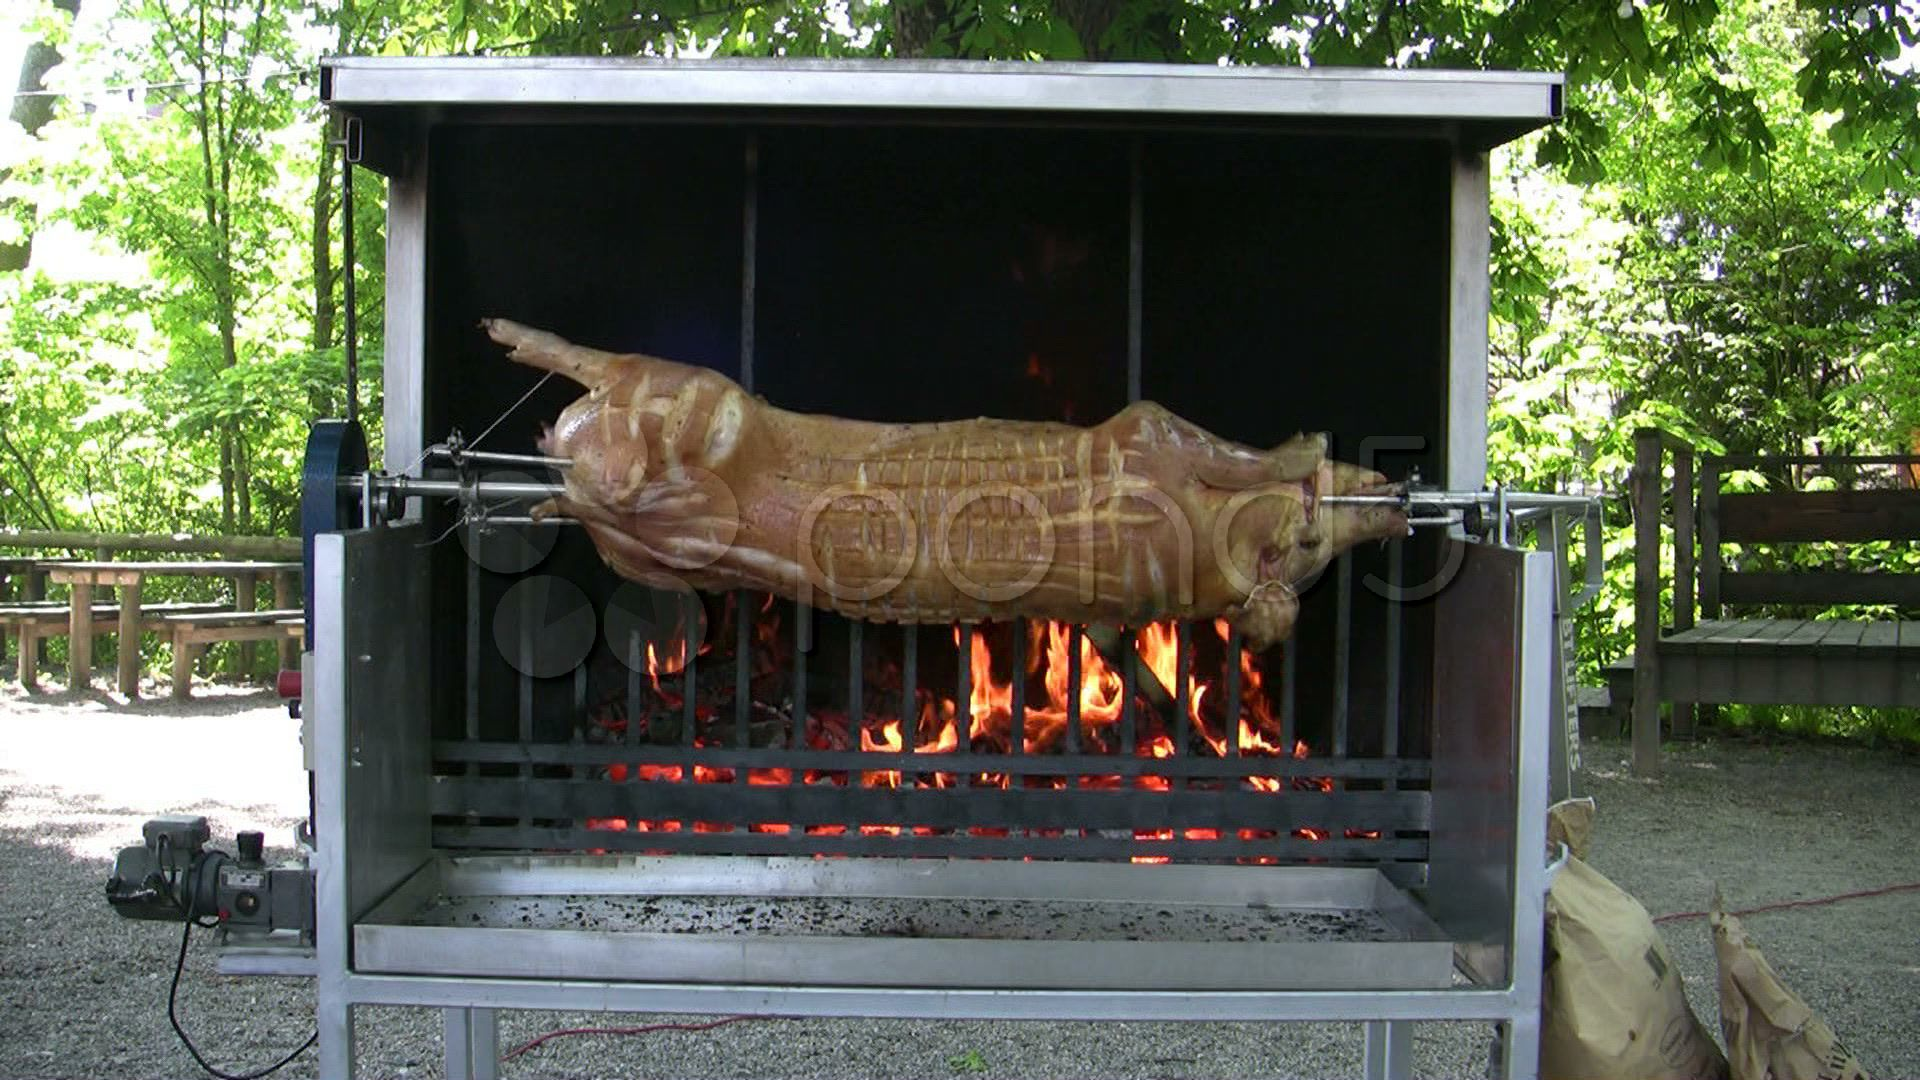 Germany beer garden open fire bbq grill roasting whole pig